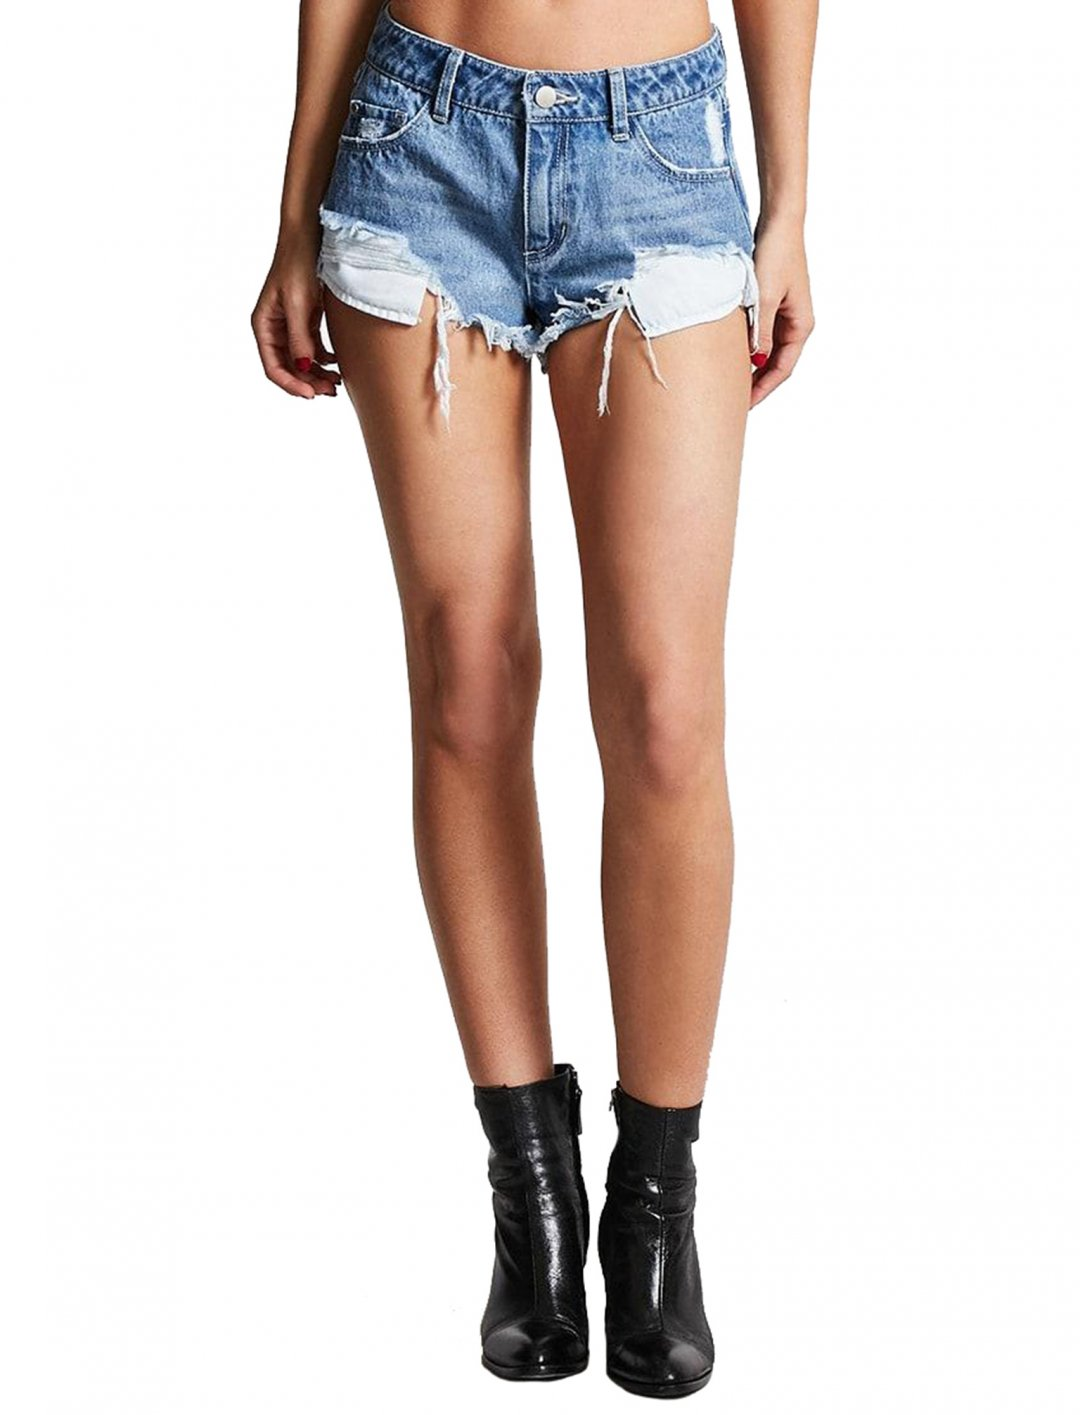 """Nadia Rose's Denim Shorts {""""id"""":5,""""product_section_id"""":1,""""name"""":""""Clothing"""",""""order"""":5} Forever21"""